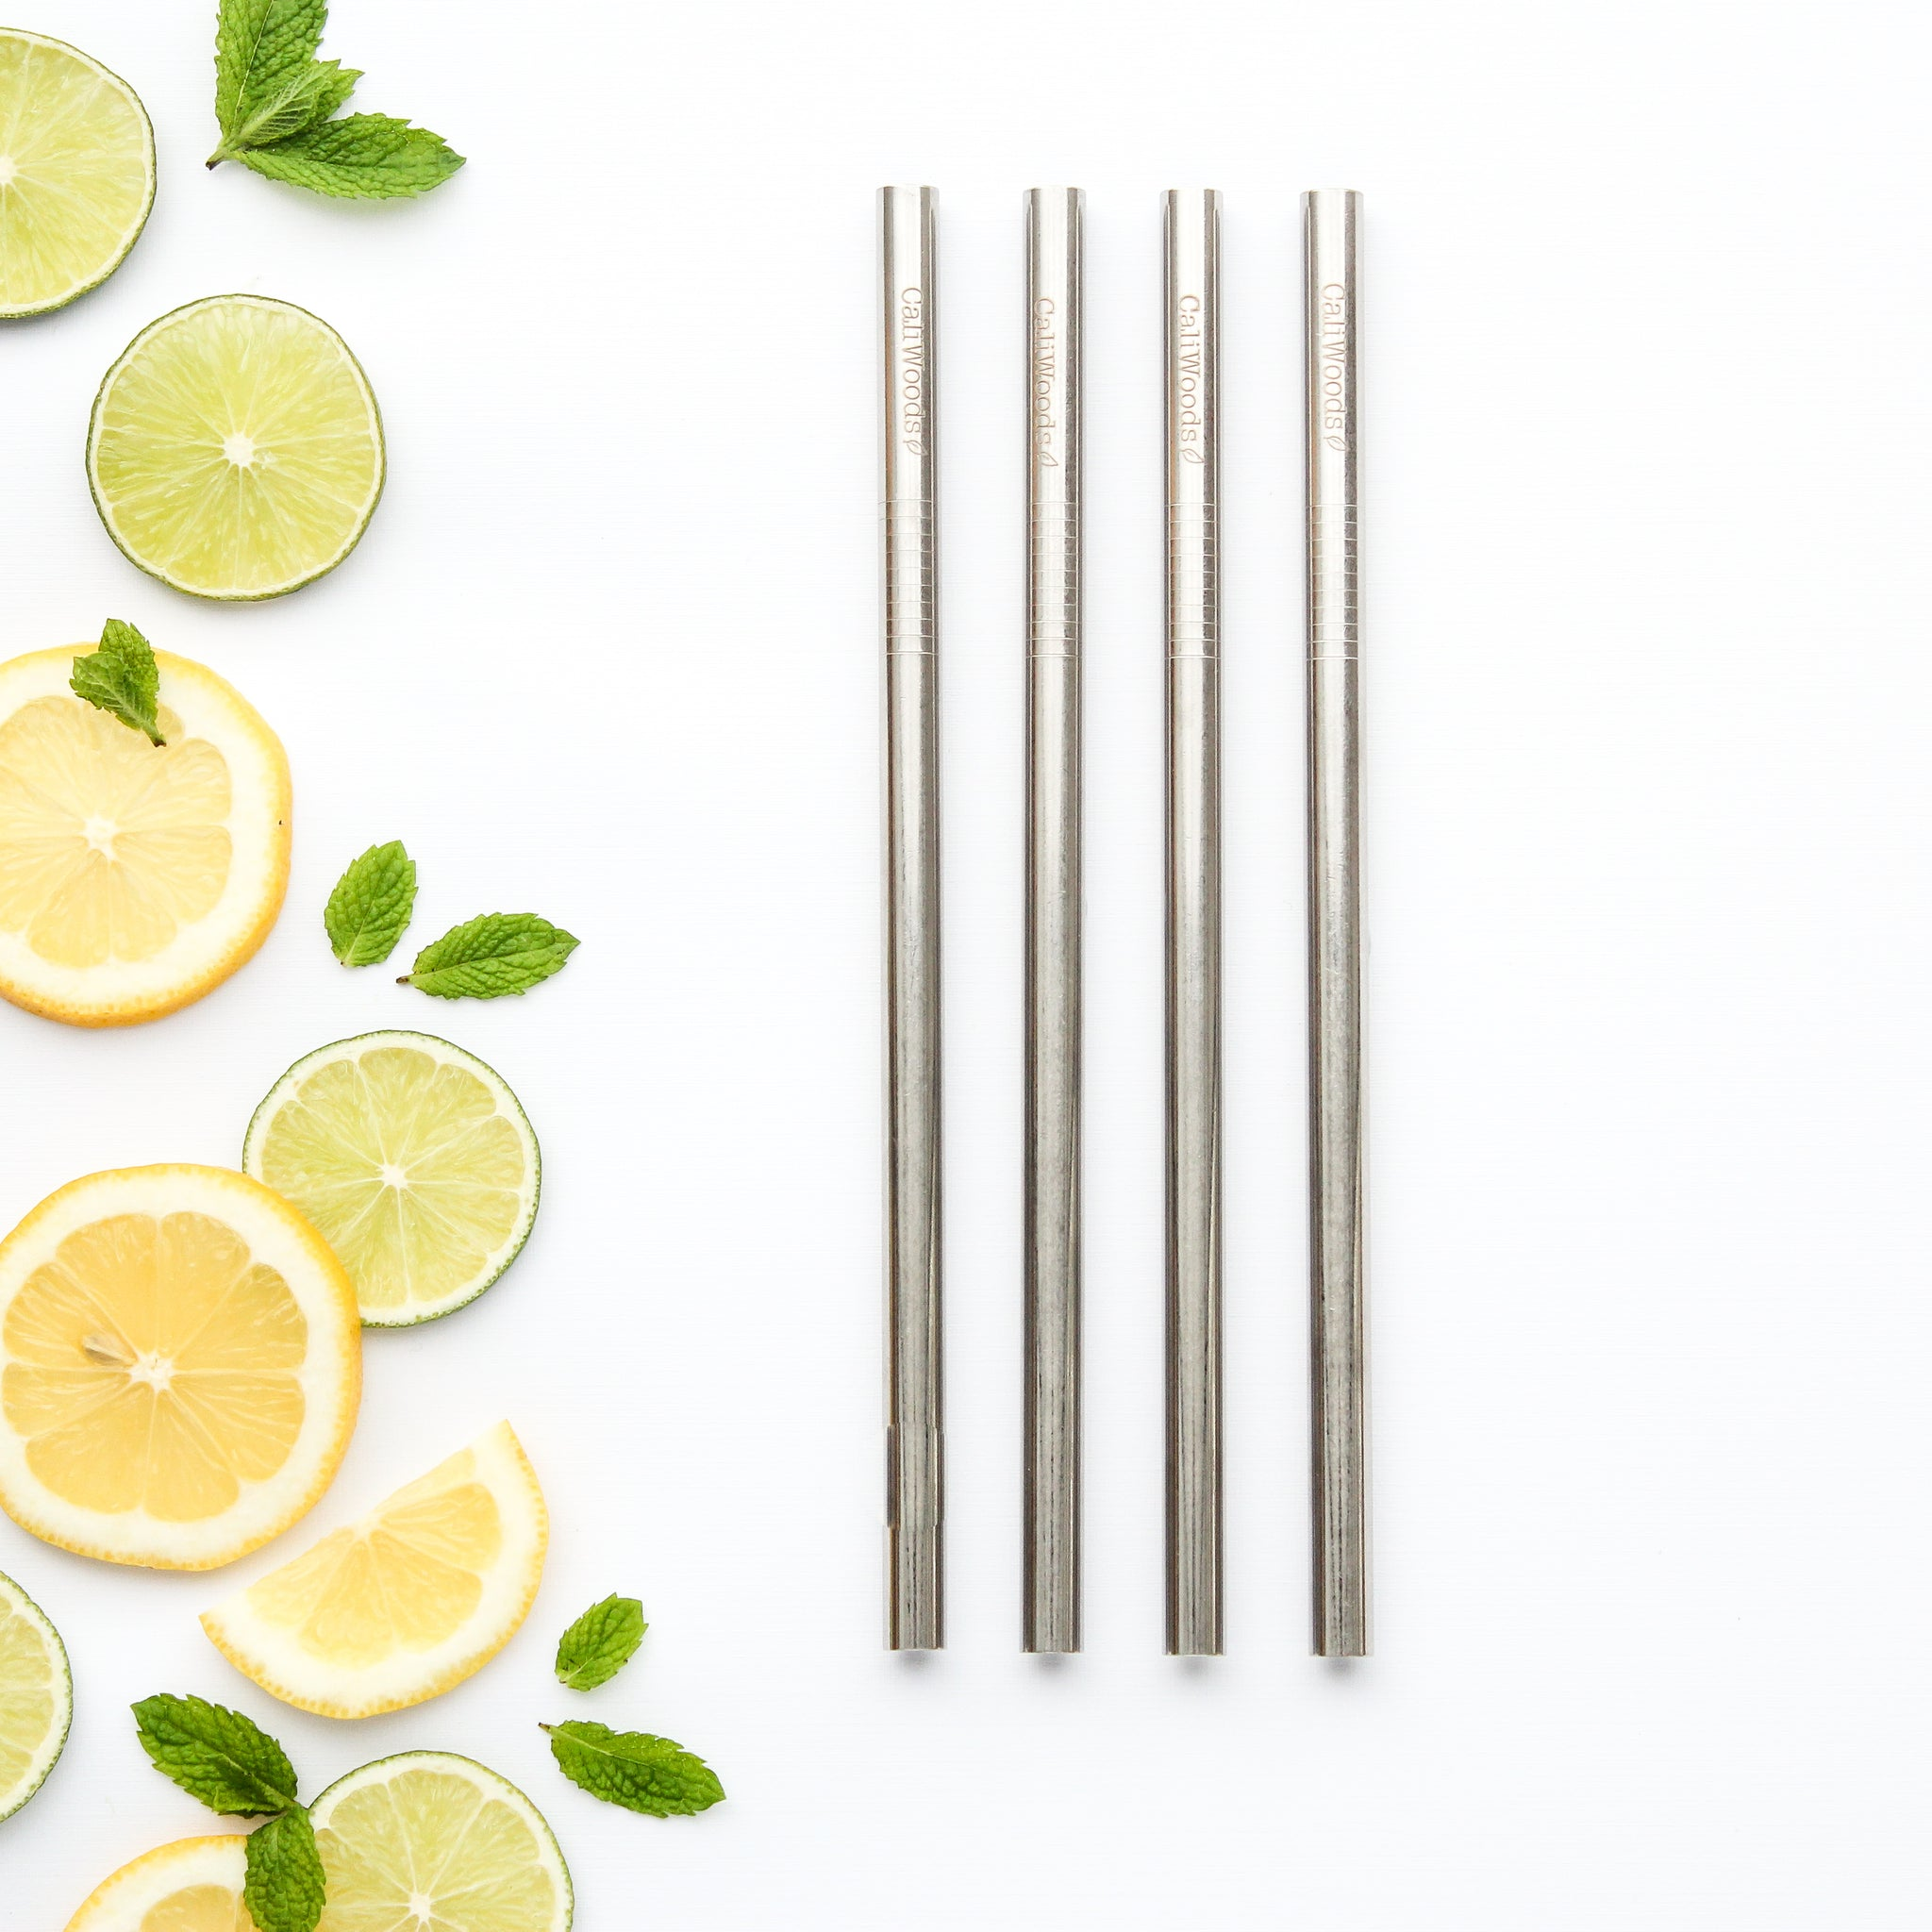 CaliWoods Reusable Stainless Steel Smoothie Straws